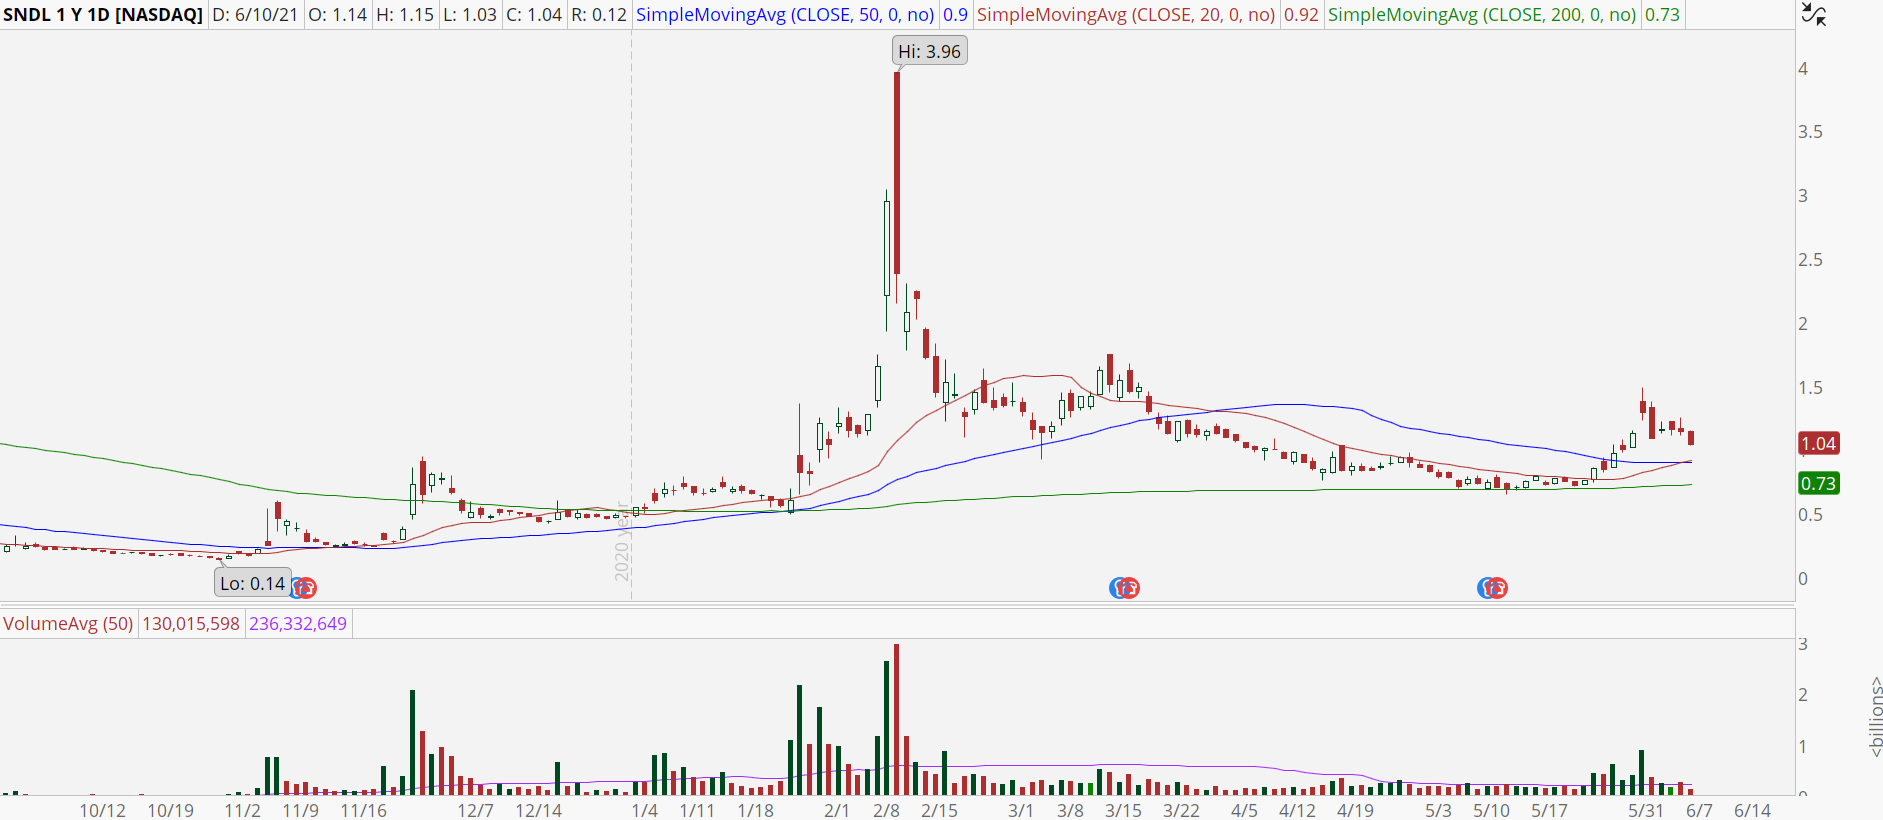 Sundial Growers (SNDL) chart with potential trend reversal